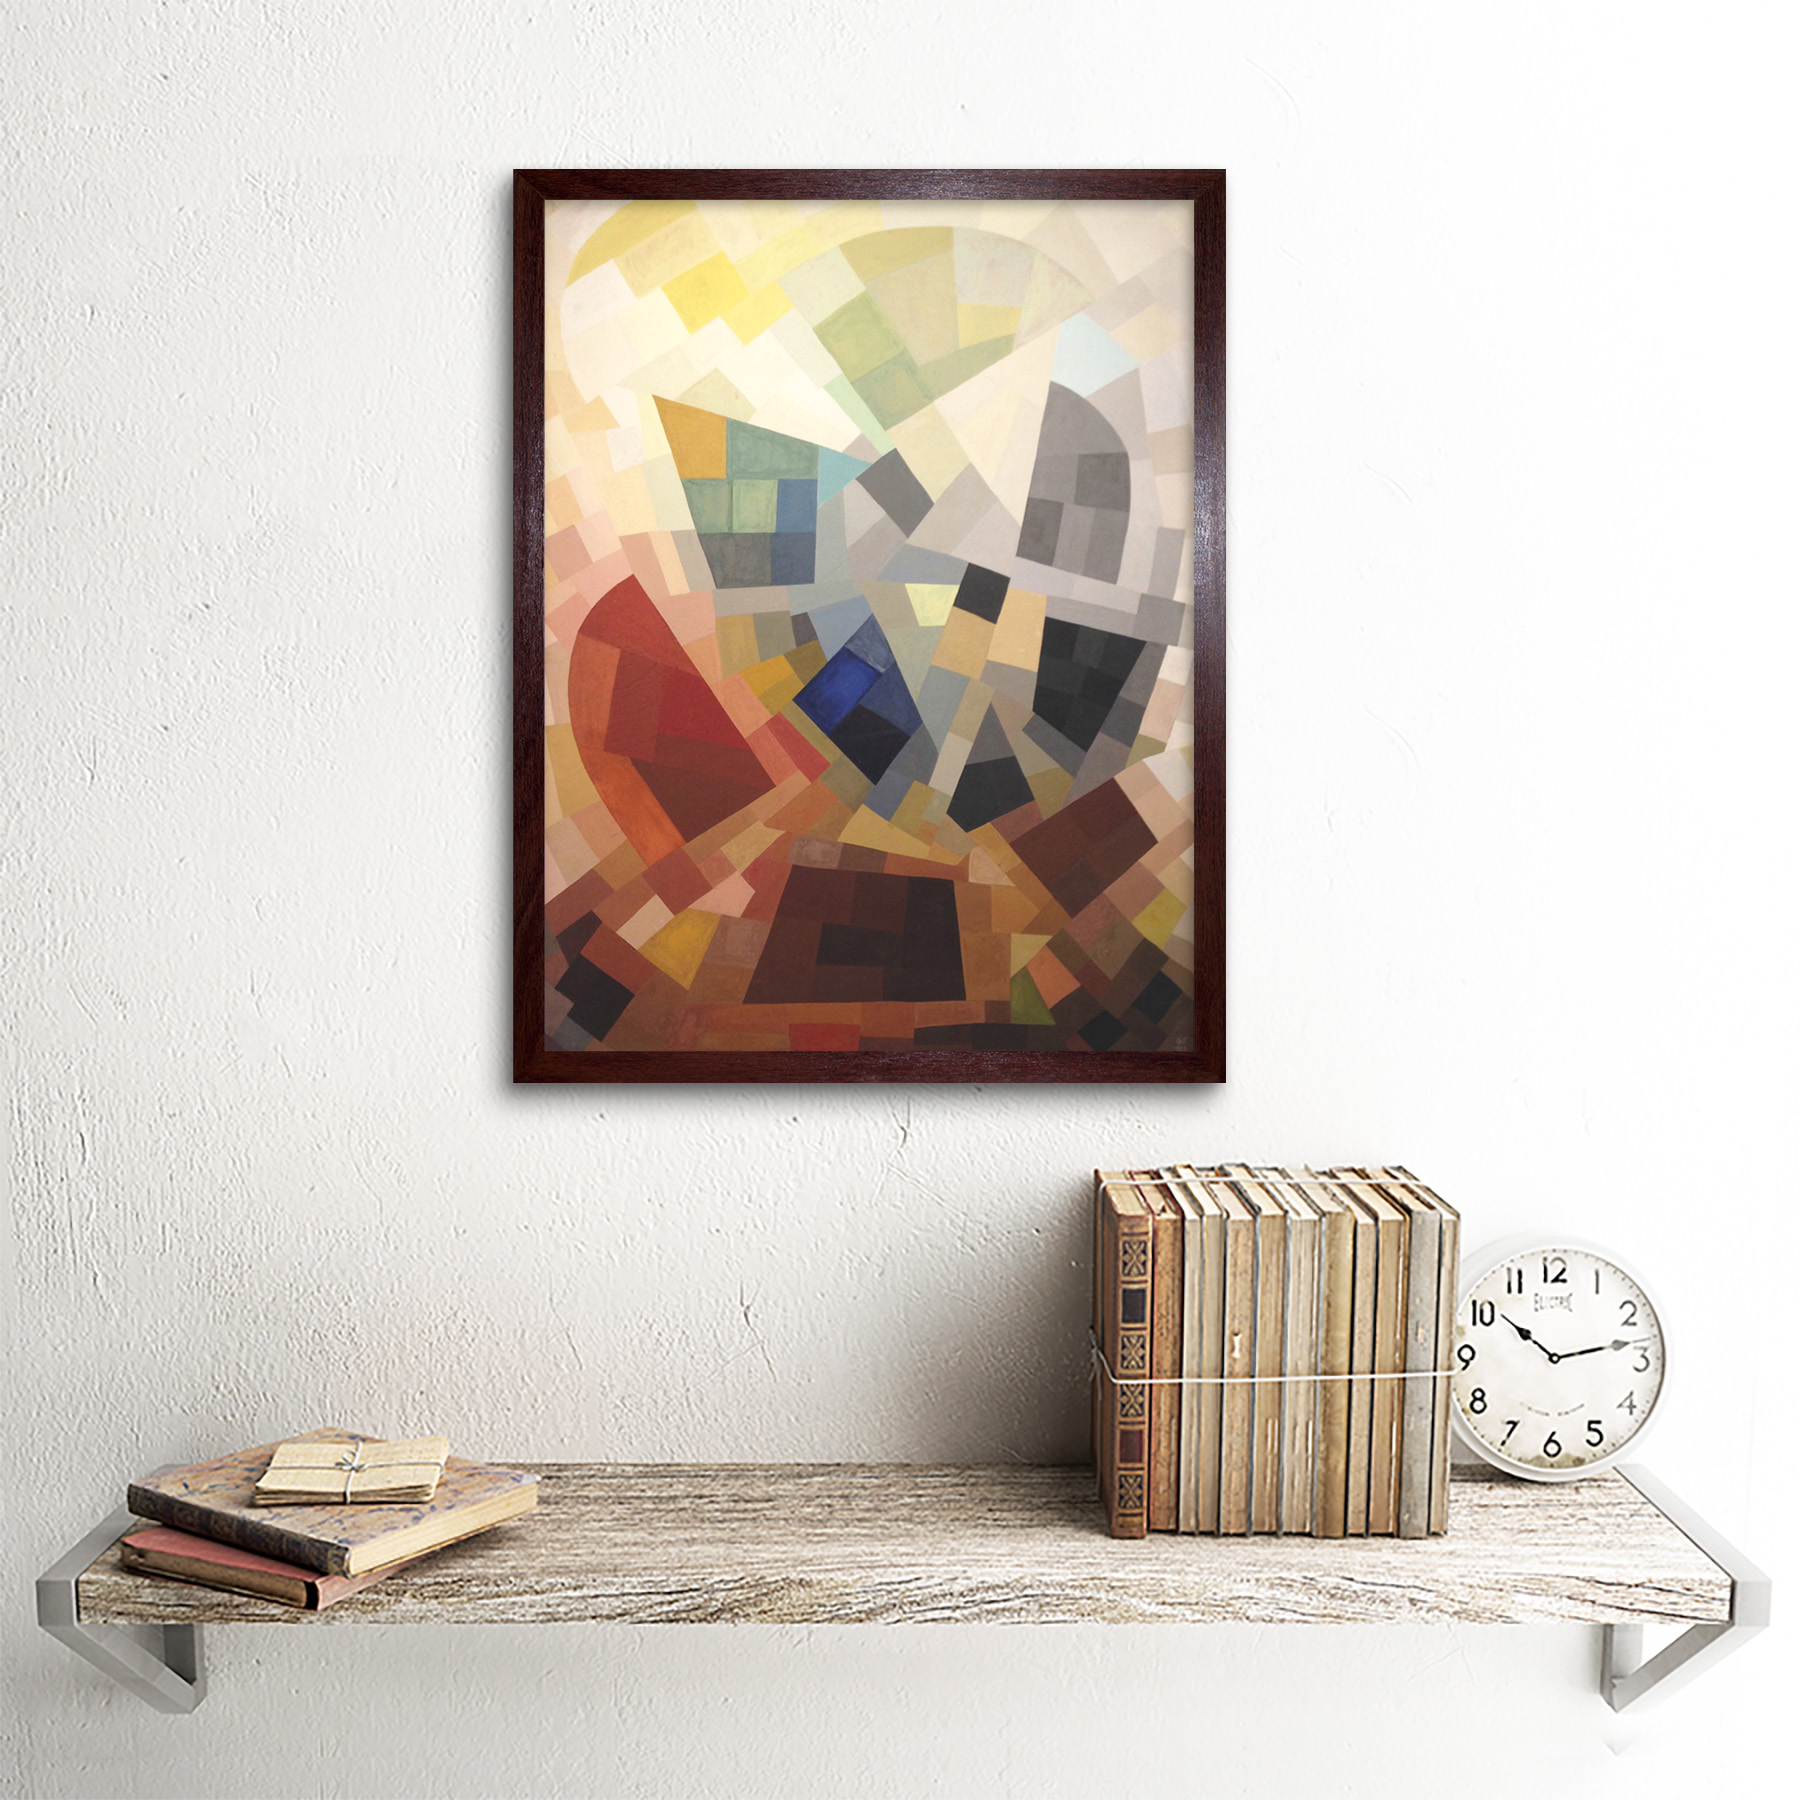 Freundlich-Abstract-Composition-Painting-Art-Print-Framed-12x16 thumbnail 8